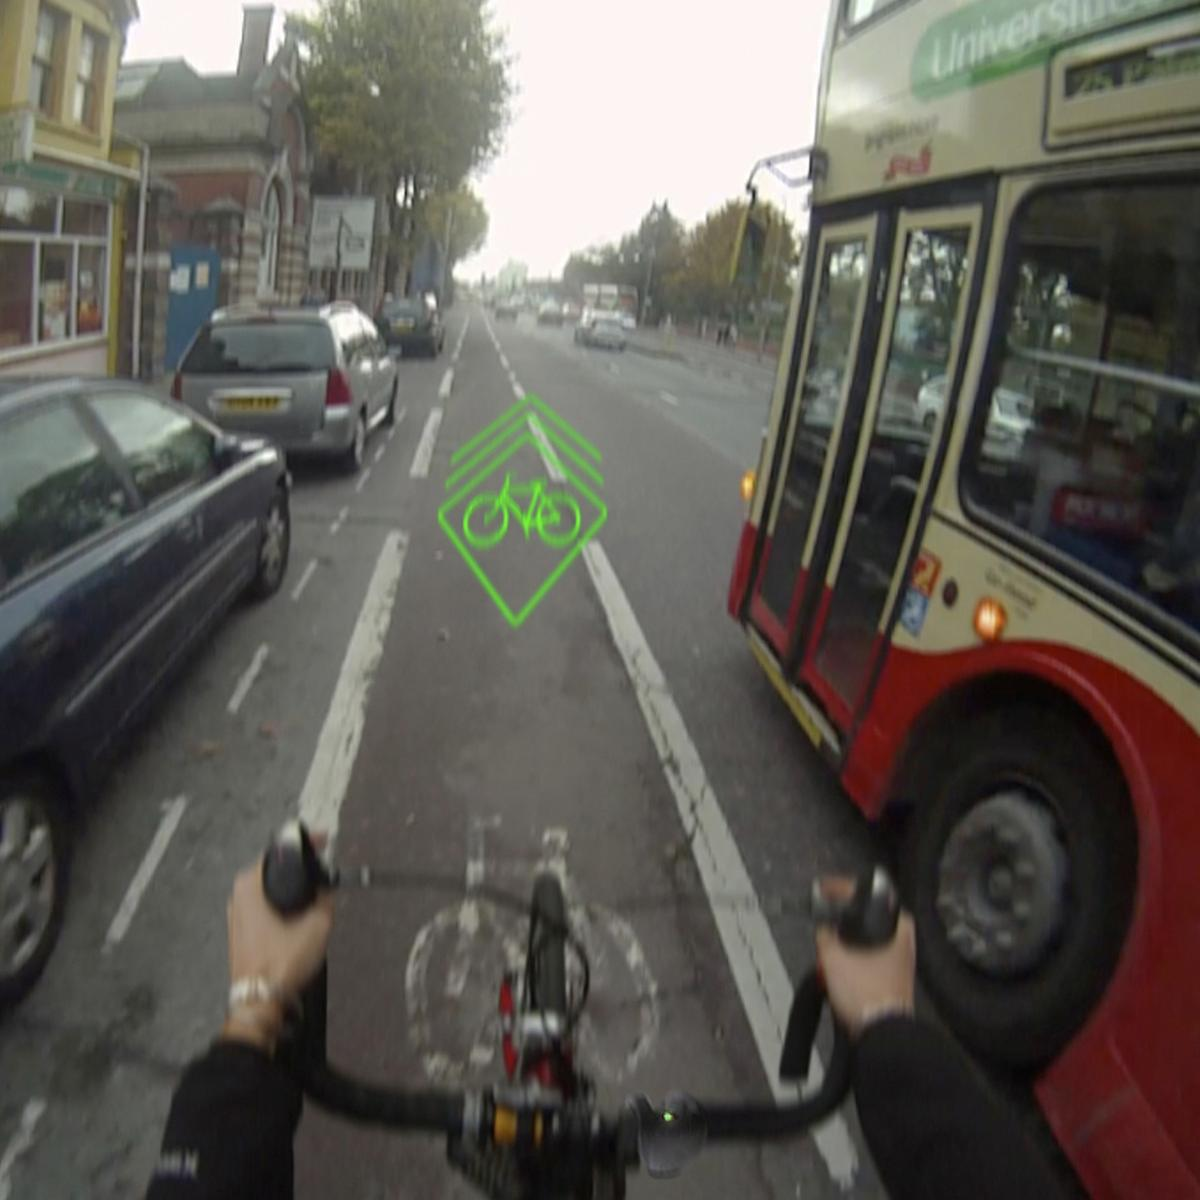 BLAZE is a protype device that alerts drivers to the presence of a cyclist, by a projecting a laser image onto the road in front of the bicycle(Photo: University of Brighton)